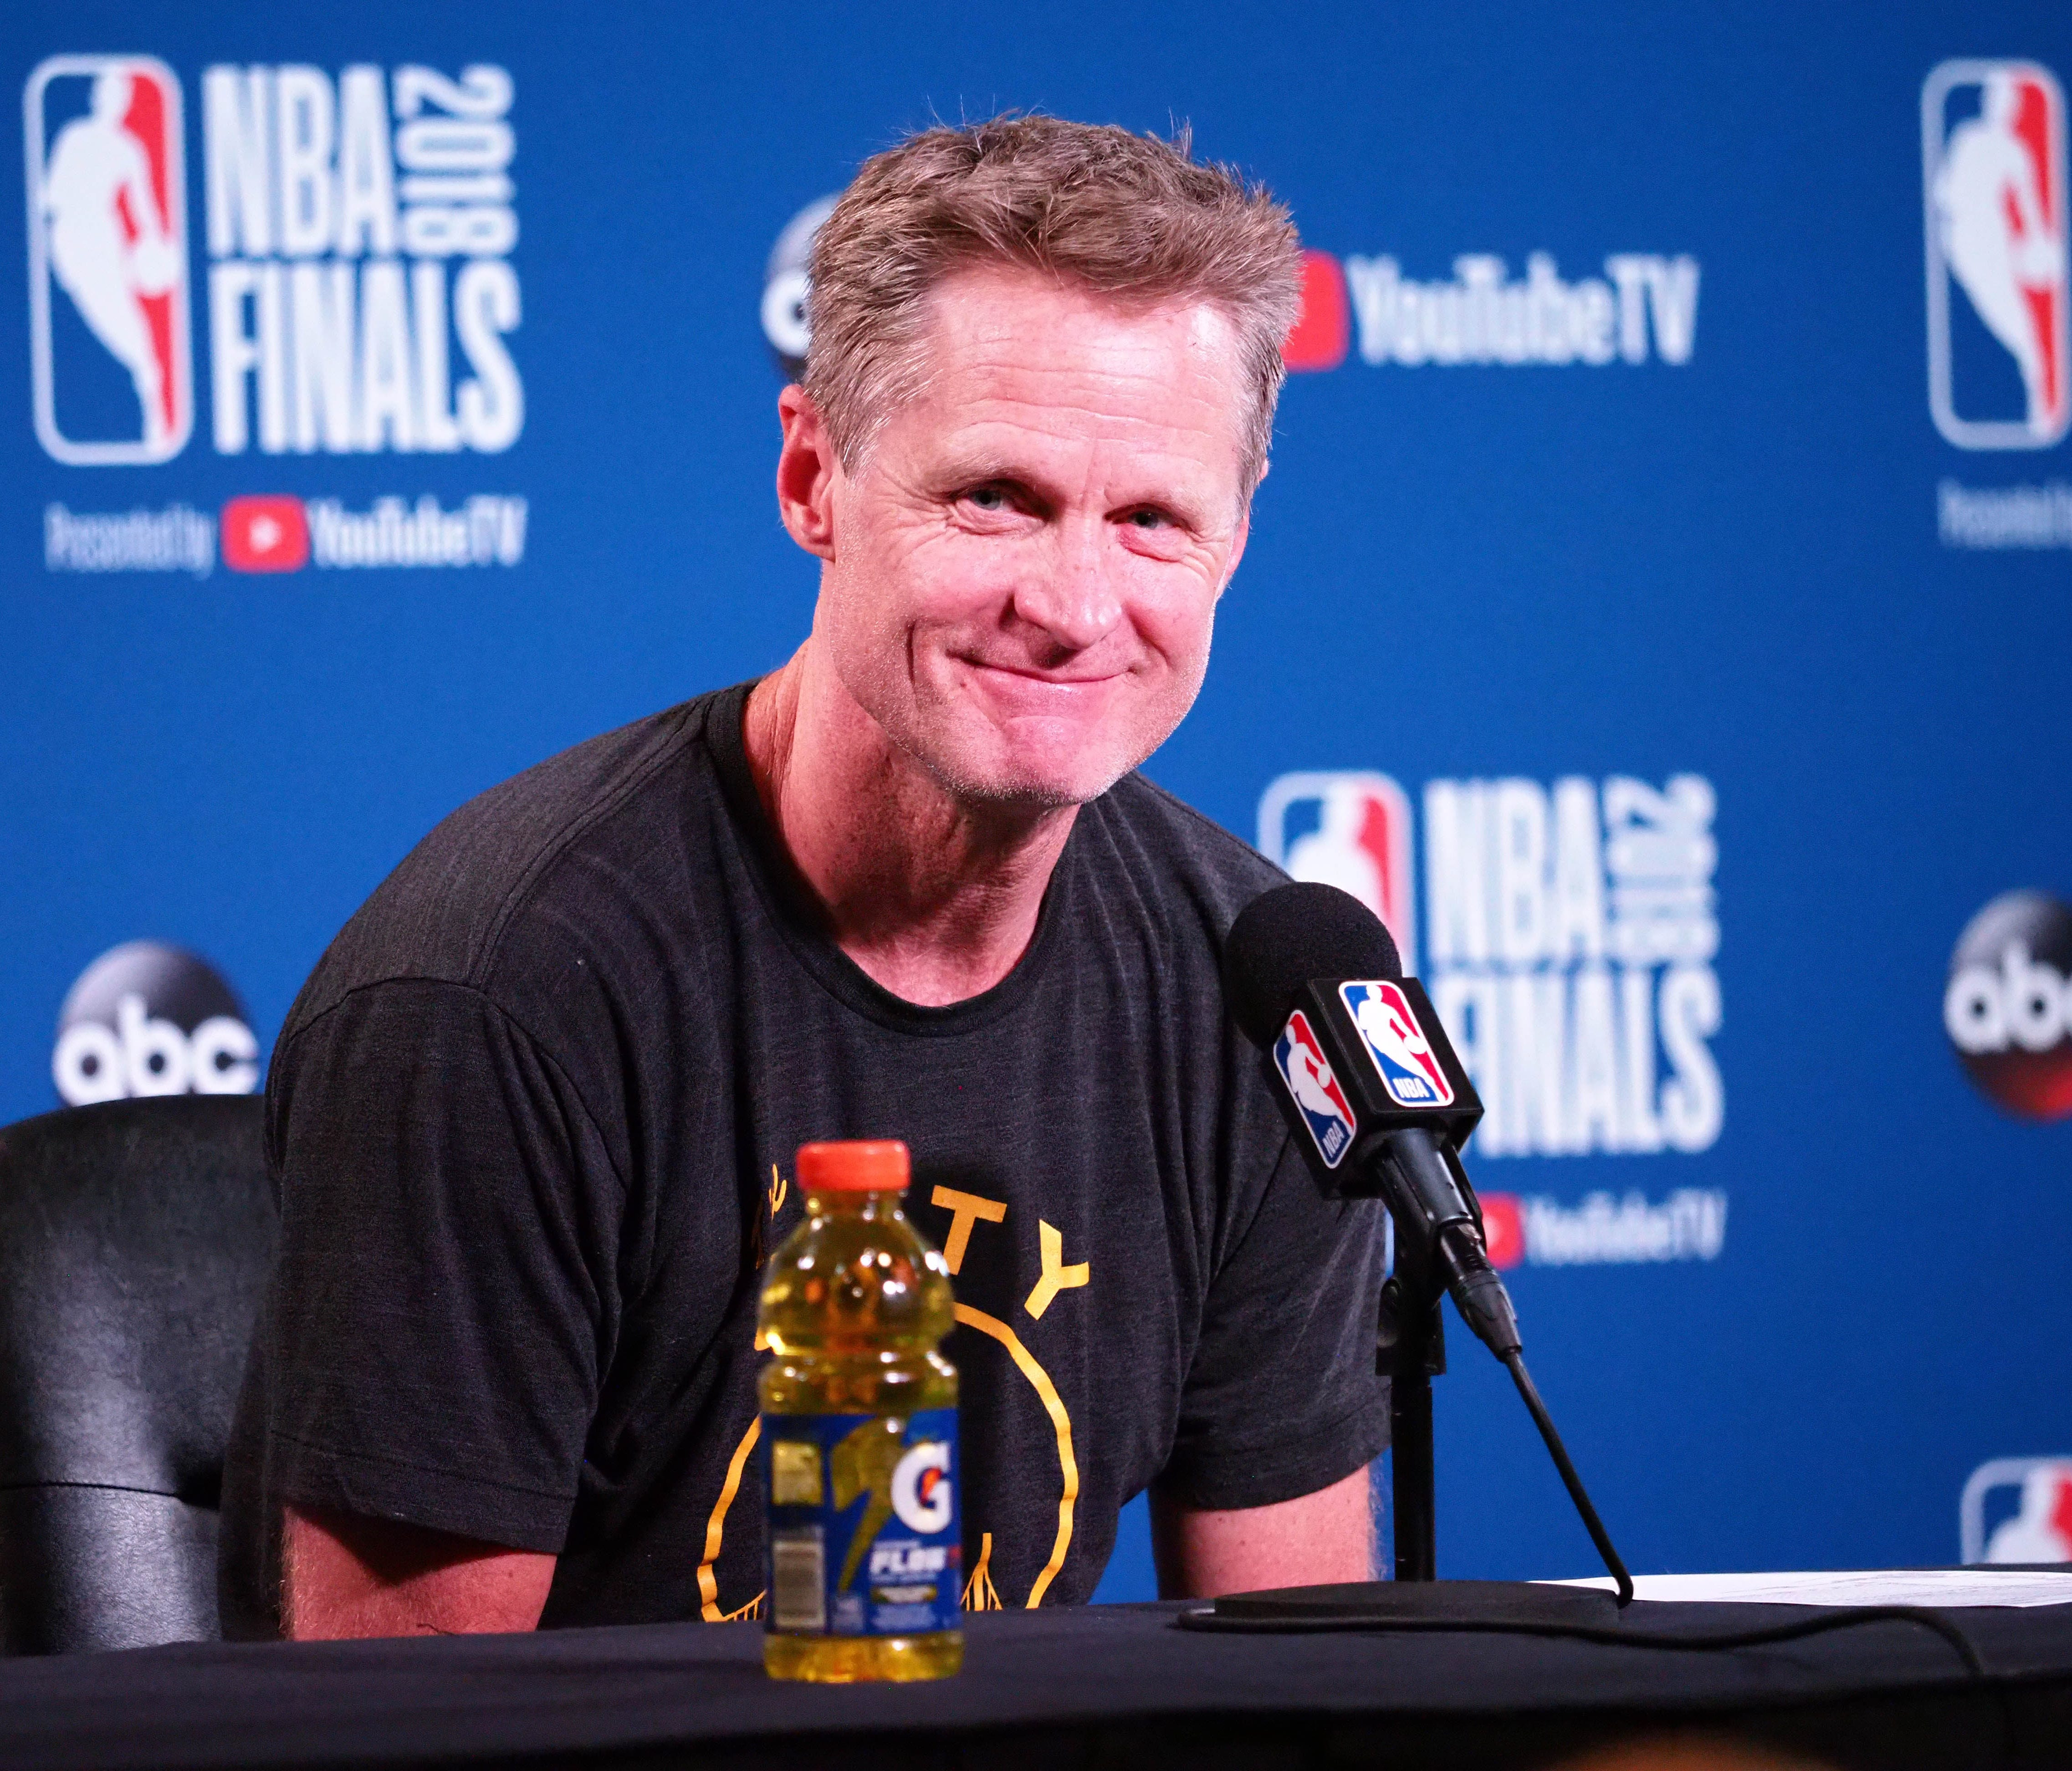 Golden State Warriors head coach Steve Kerr speaks to media following Game 2 of the 2018 NBA Finals.